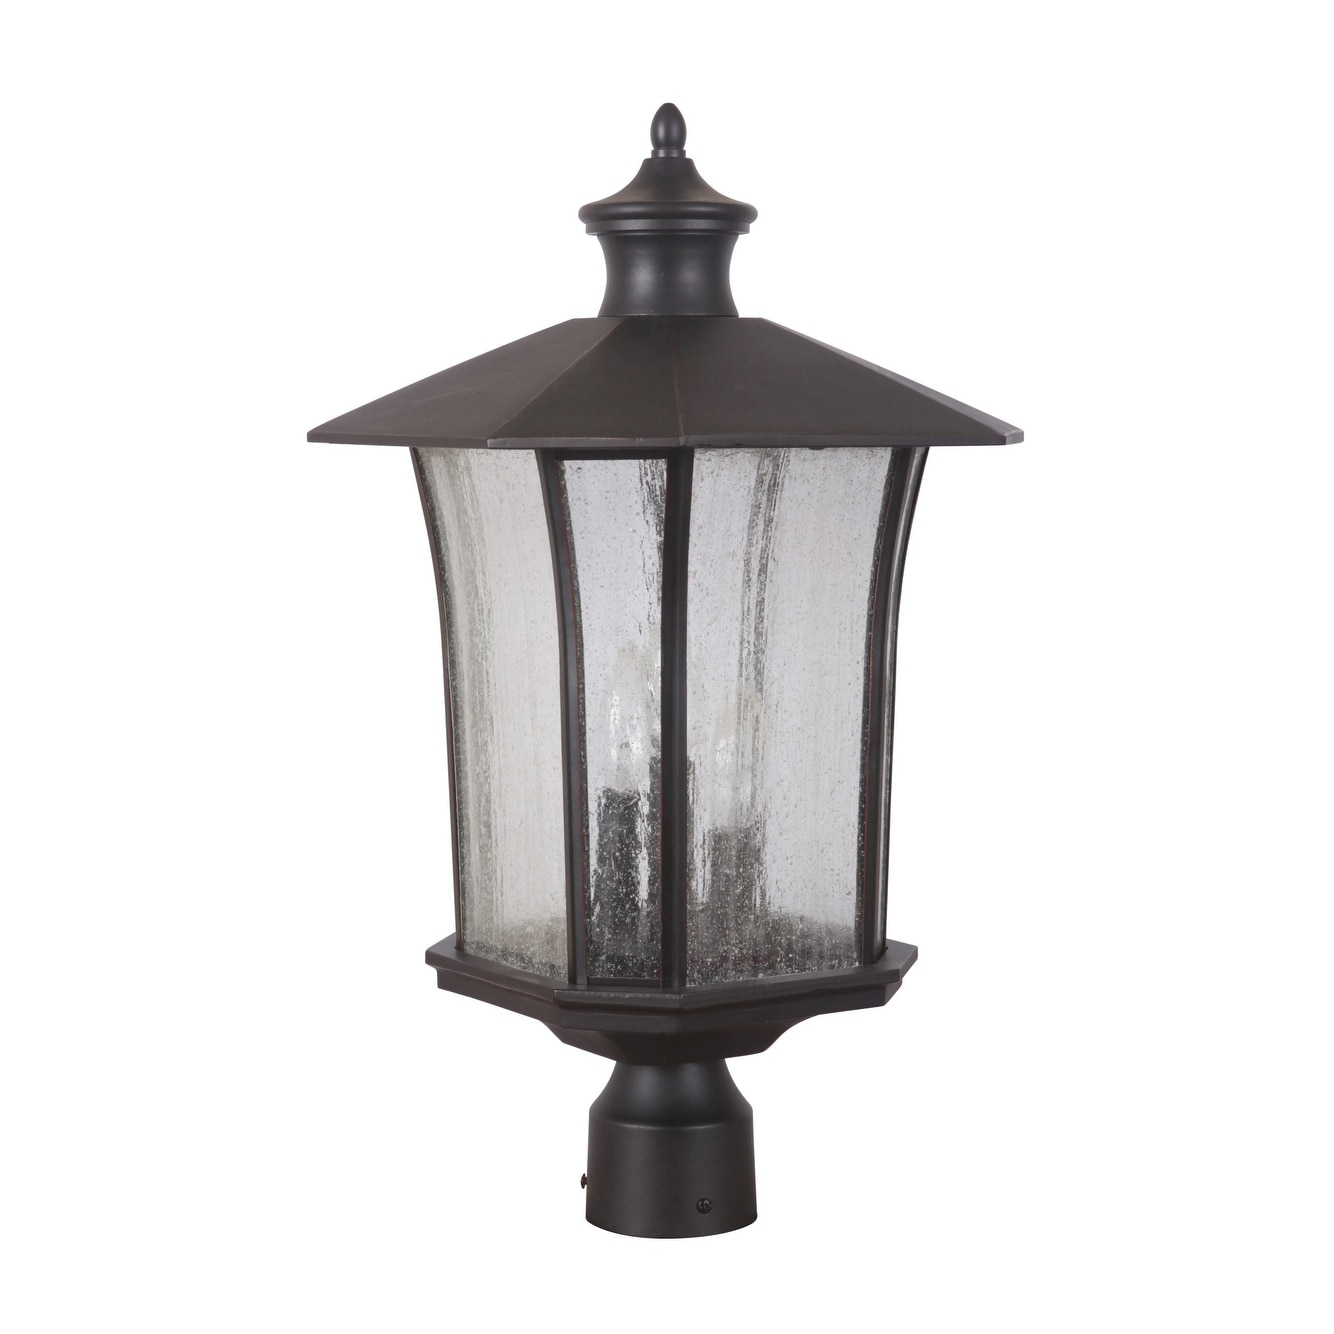 Shop Craftmade Z7725 Chateau 3 Light Outdoor Post Light Post Not Included 11 5 Wide Overstock 13055065